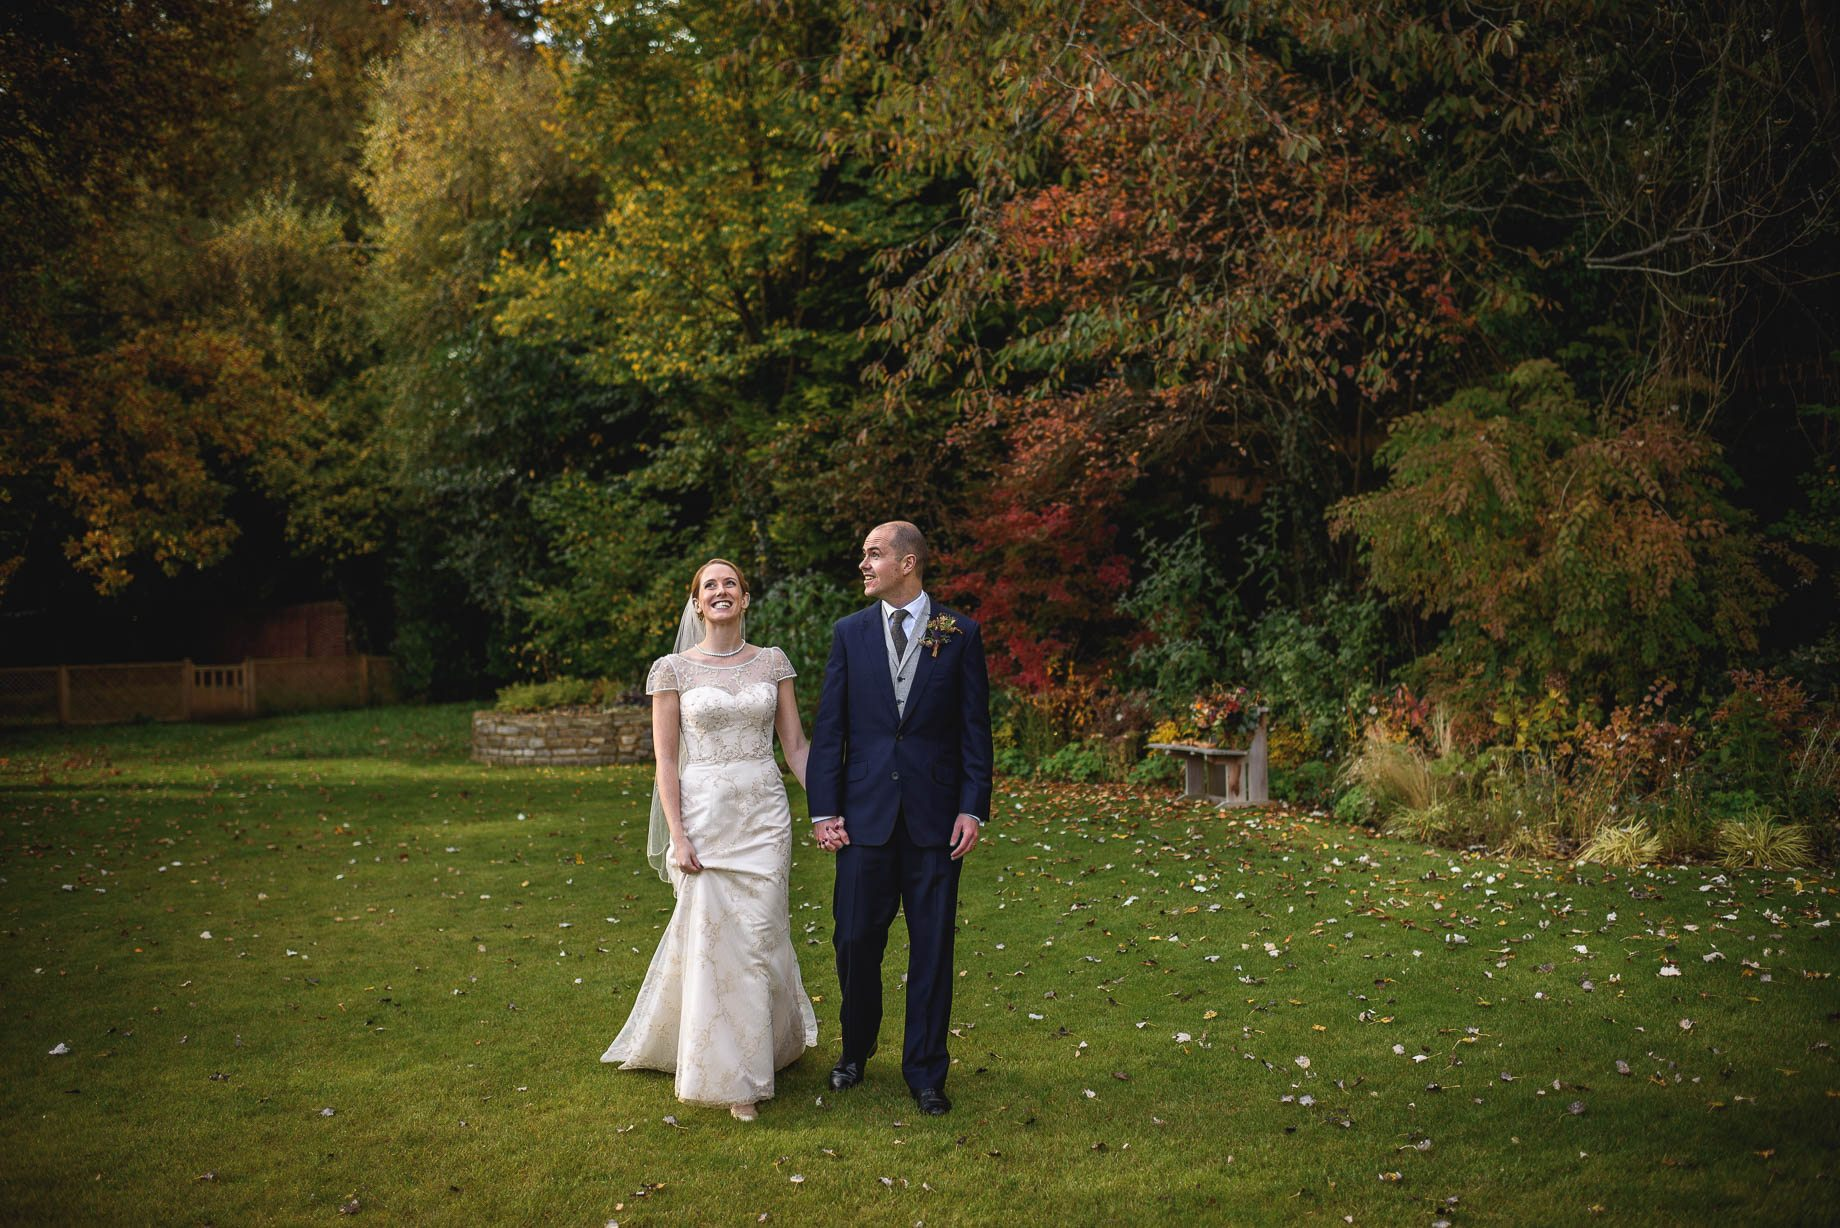 millbridge-court-wedding-photography-guy-collier-photography-clare-and-ian-124-of-188